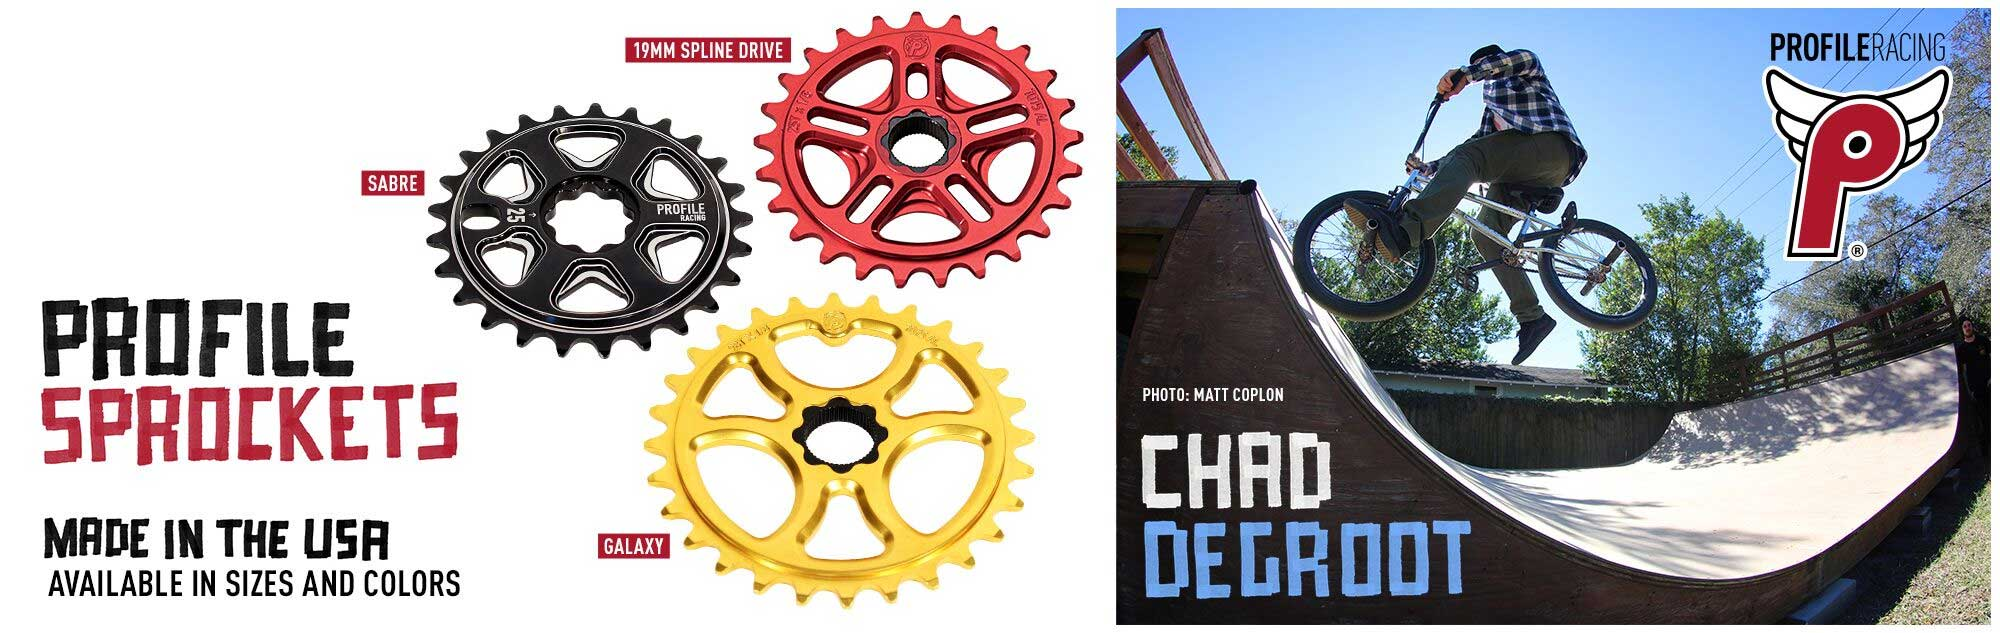 Profile Racing Sprockets available at Albe's BMX Online